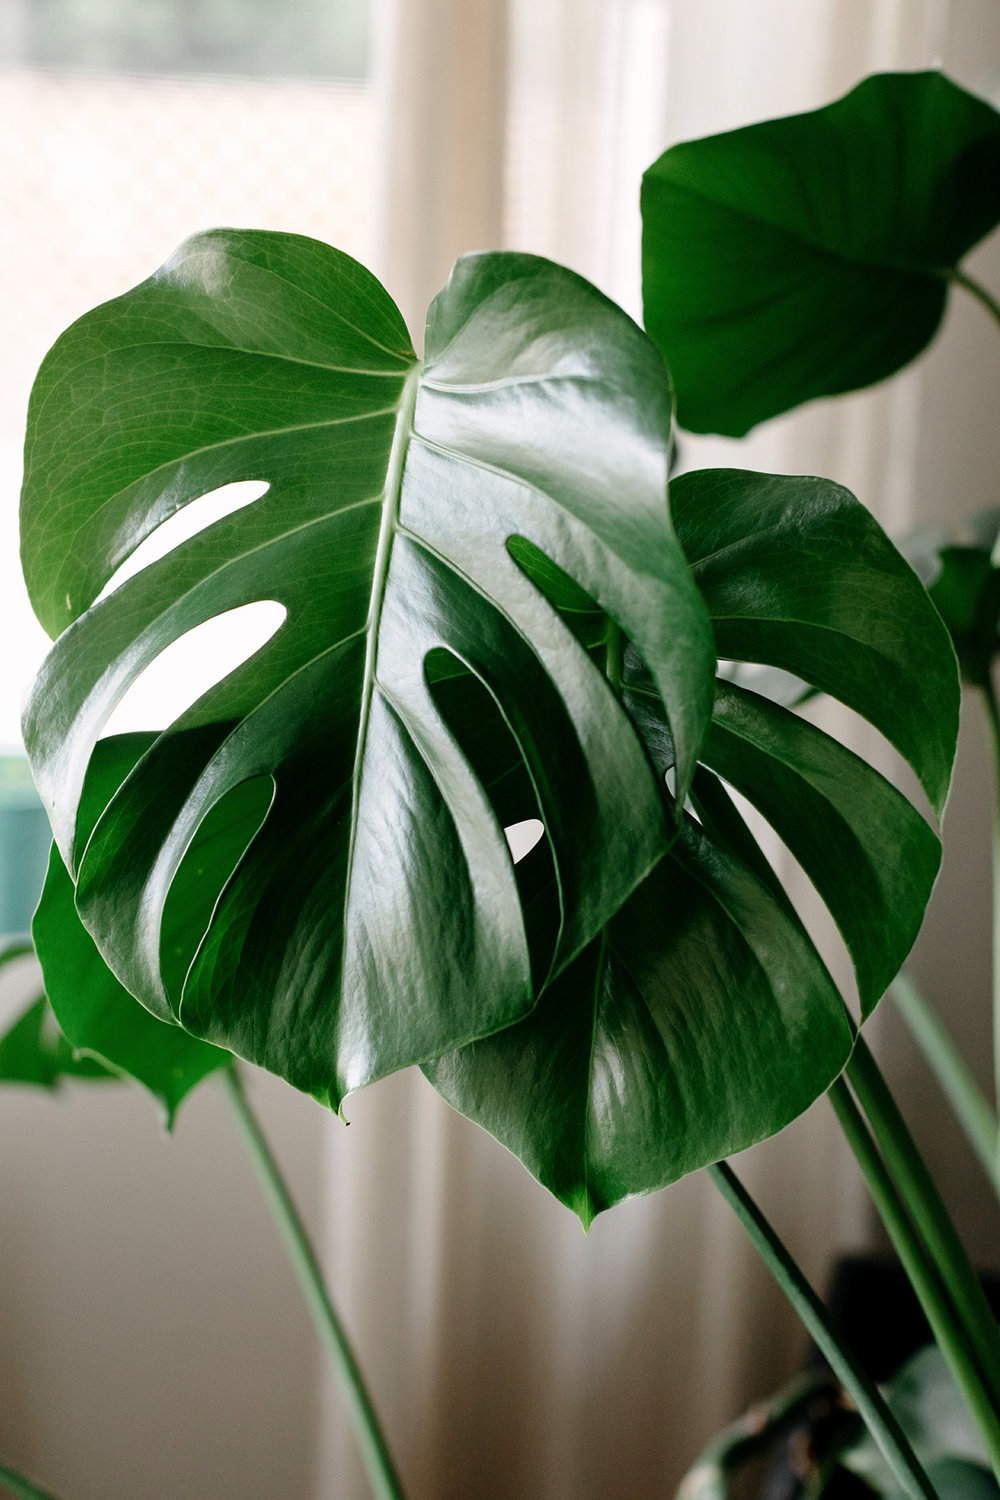 006-plant--plant-addict--blogger--interior-blogger--interio--home-blogger--lifestyle--lifestlye-blogger--tropical--urban-jungle.jpg